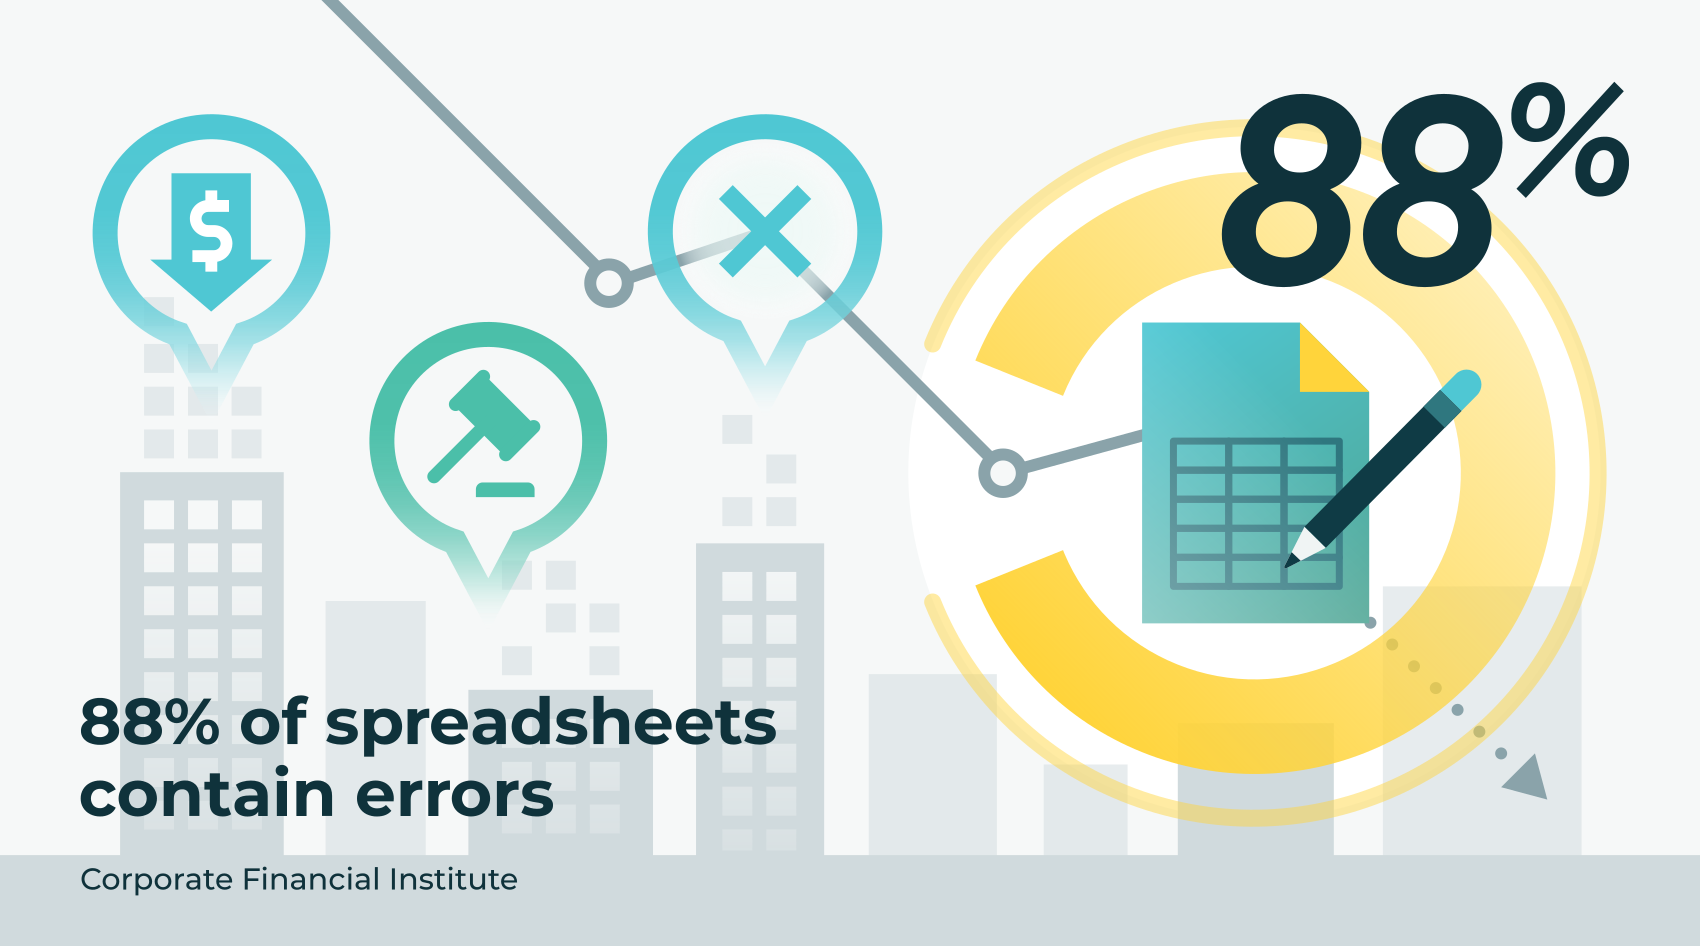 88% of spreadsheets contain errors as reported by the Corporate Financial Institute